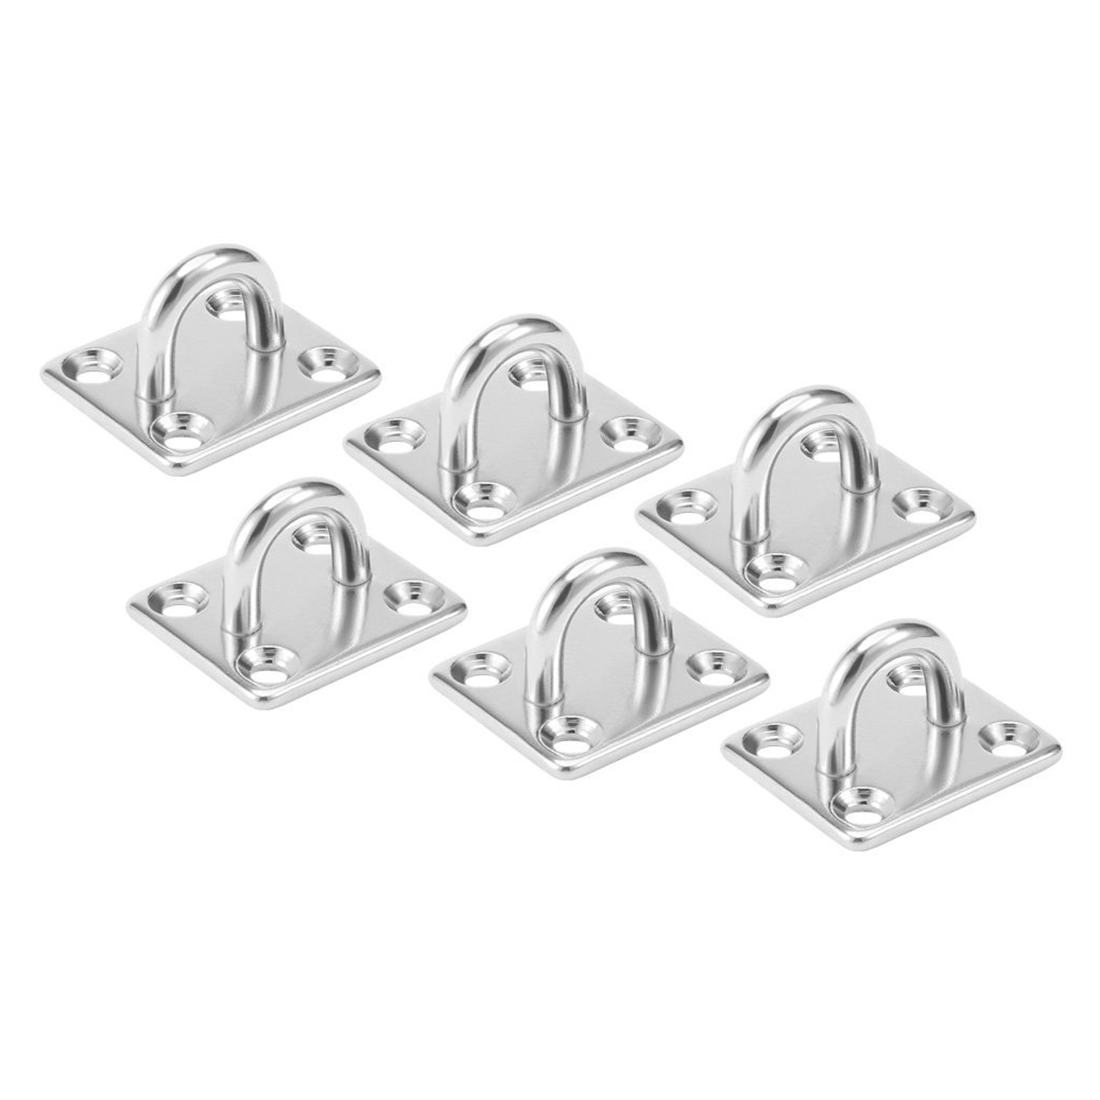 THGS 304 Stainless Steel 5mm Thick Ring Square Sail Shade Pad Eye Plate Boat Rigging 6pcs